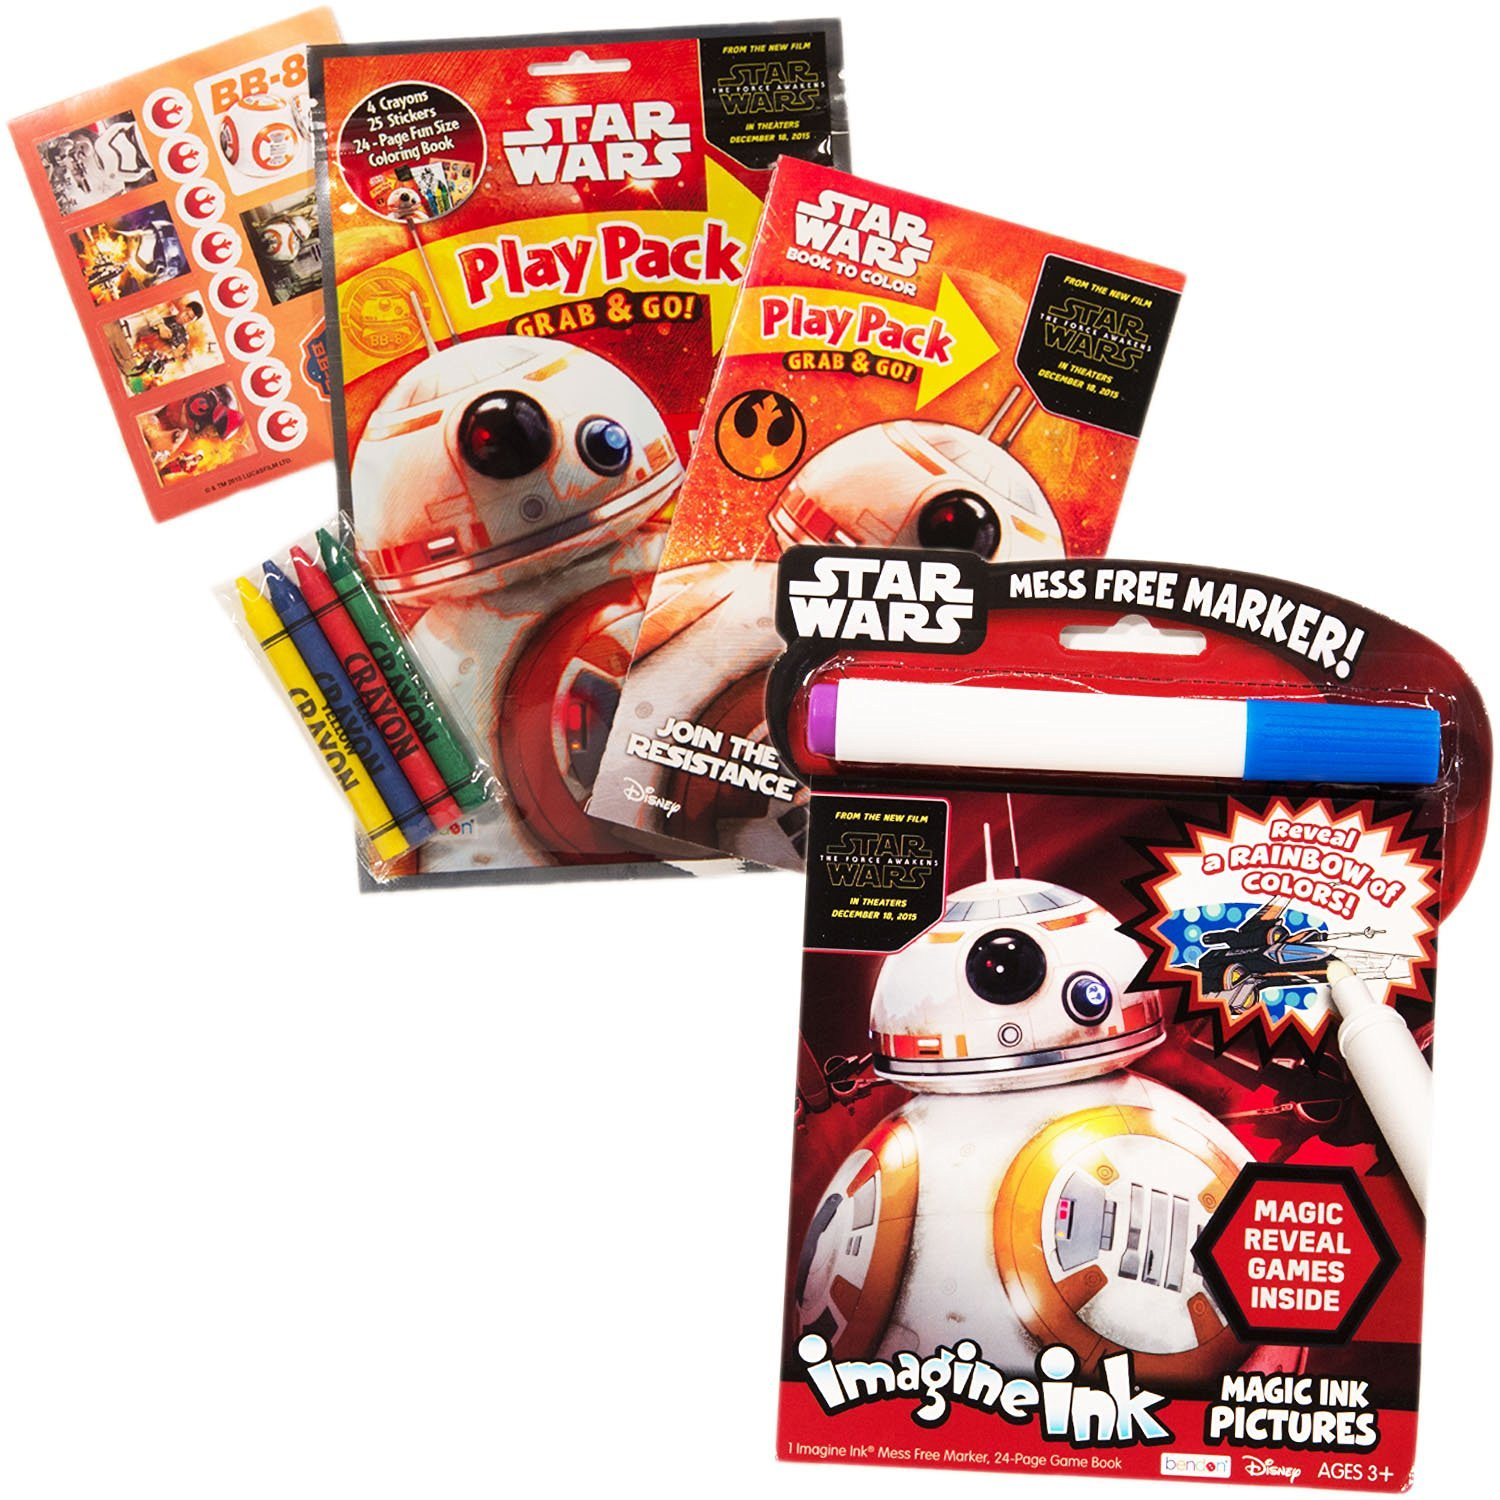 Star Wars Imagine Ink Book And Activity Pack Set With Stickers Includes Mess Free Marker